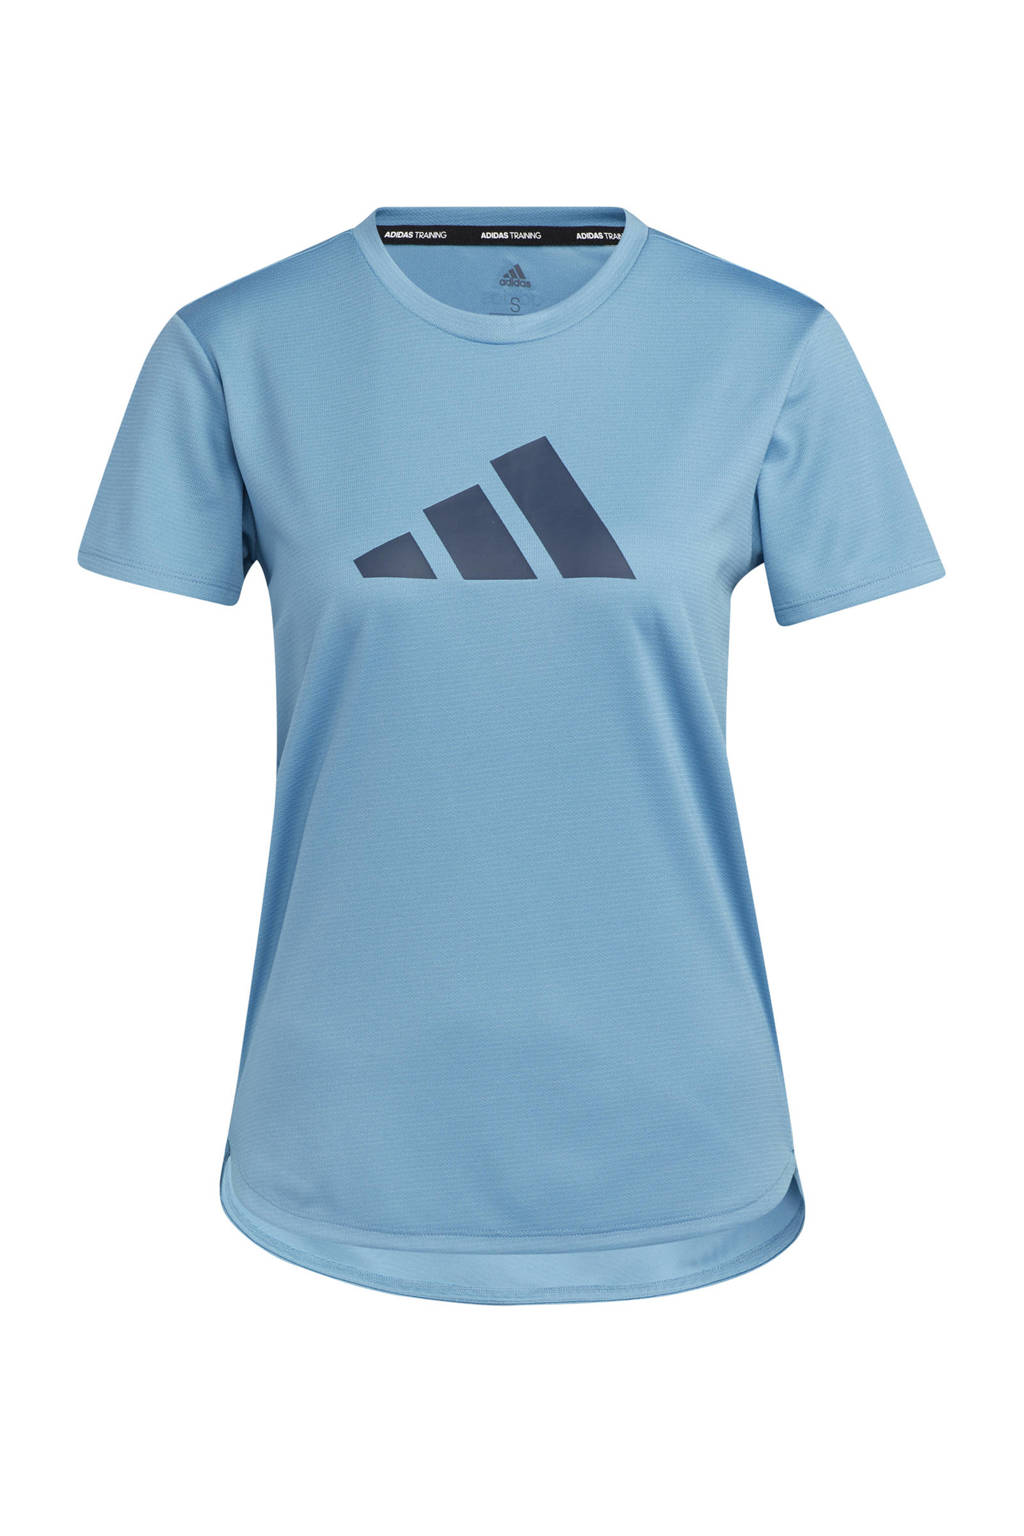 adidas Performance Designed4Training sport T-shirt lichtblauw, Lichtblauw